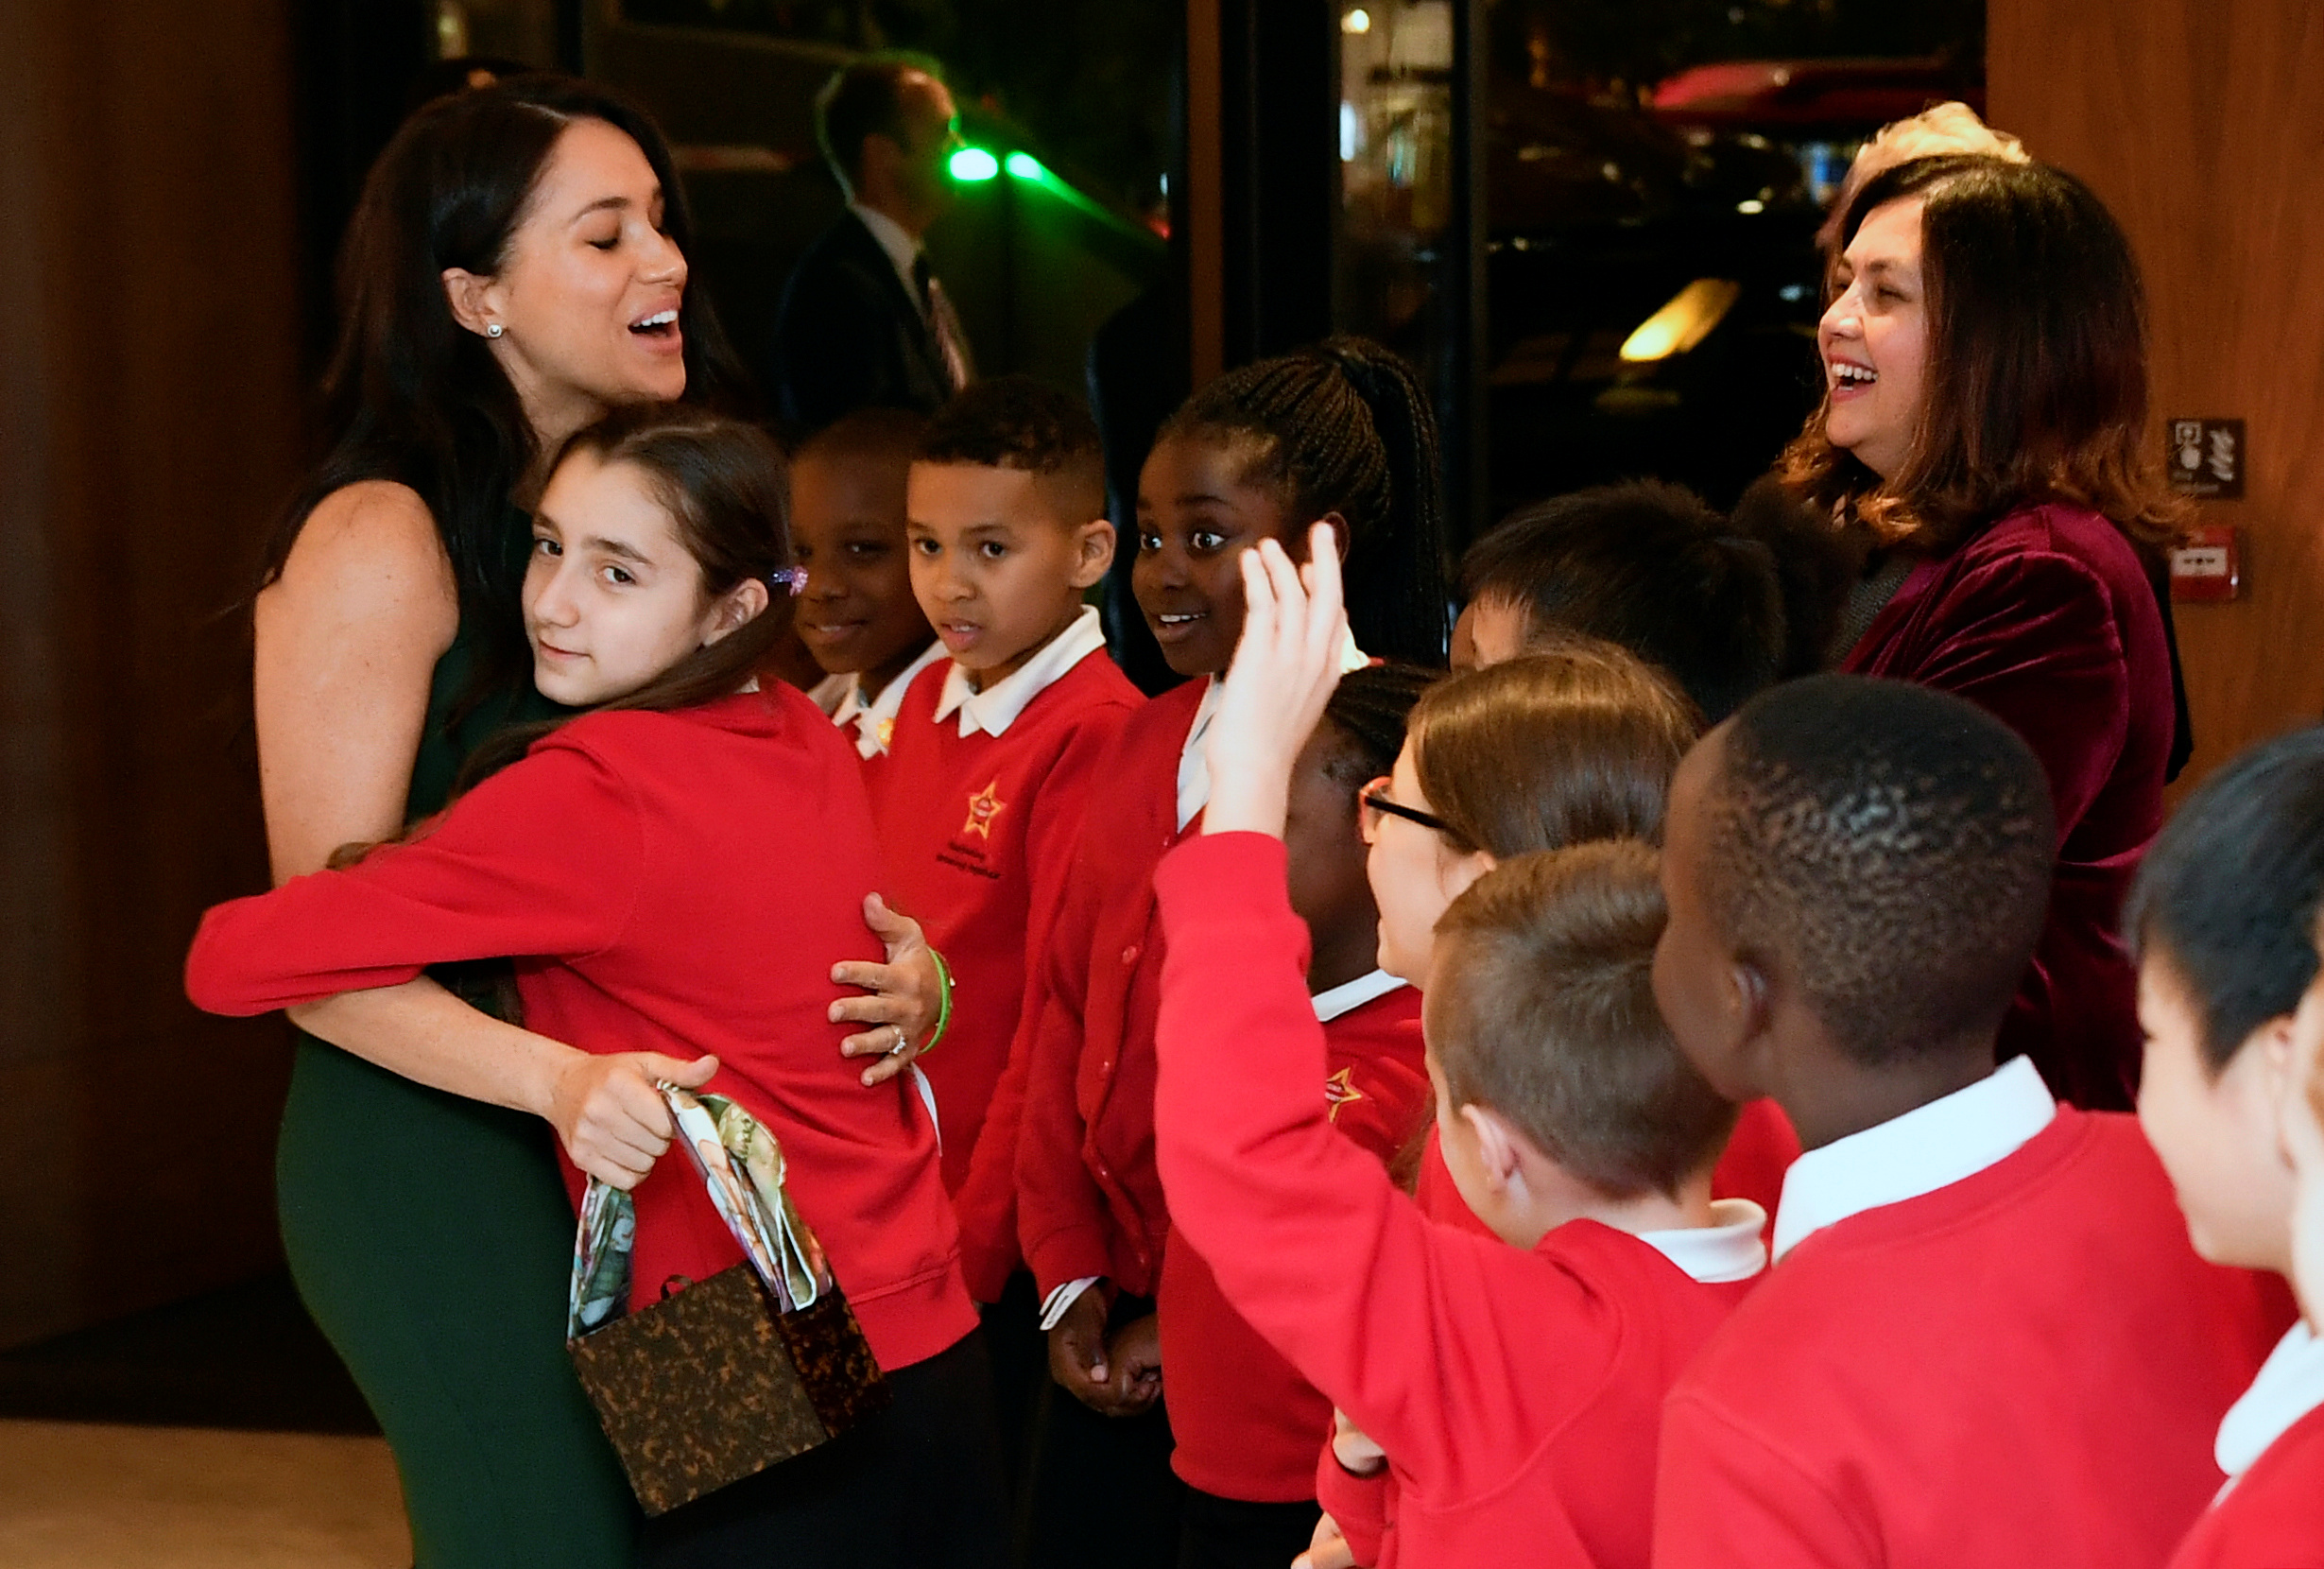 Meghan, Duchess of Sussex (L) is embraced by a member of Star Primary School Choir during the annual WellChild Awards in London on October 15, 2019. - WellChild is the national charity for seriously ill children and their families. The WellChild Awards celebrate the inspiring qualities of some of the country's seriously ill young people and the dedication of those who care for and support them. (Photo by TOBY MELVILLE/POOL/AFP via Getty Images)